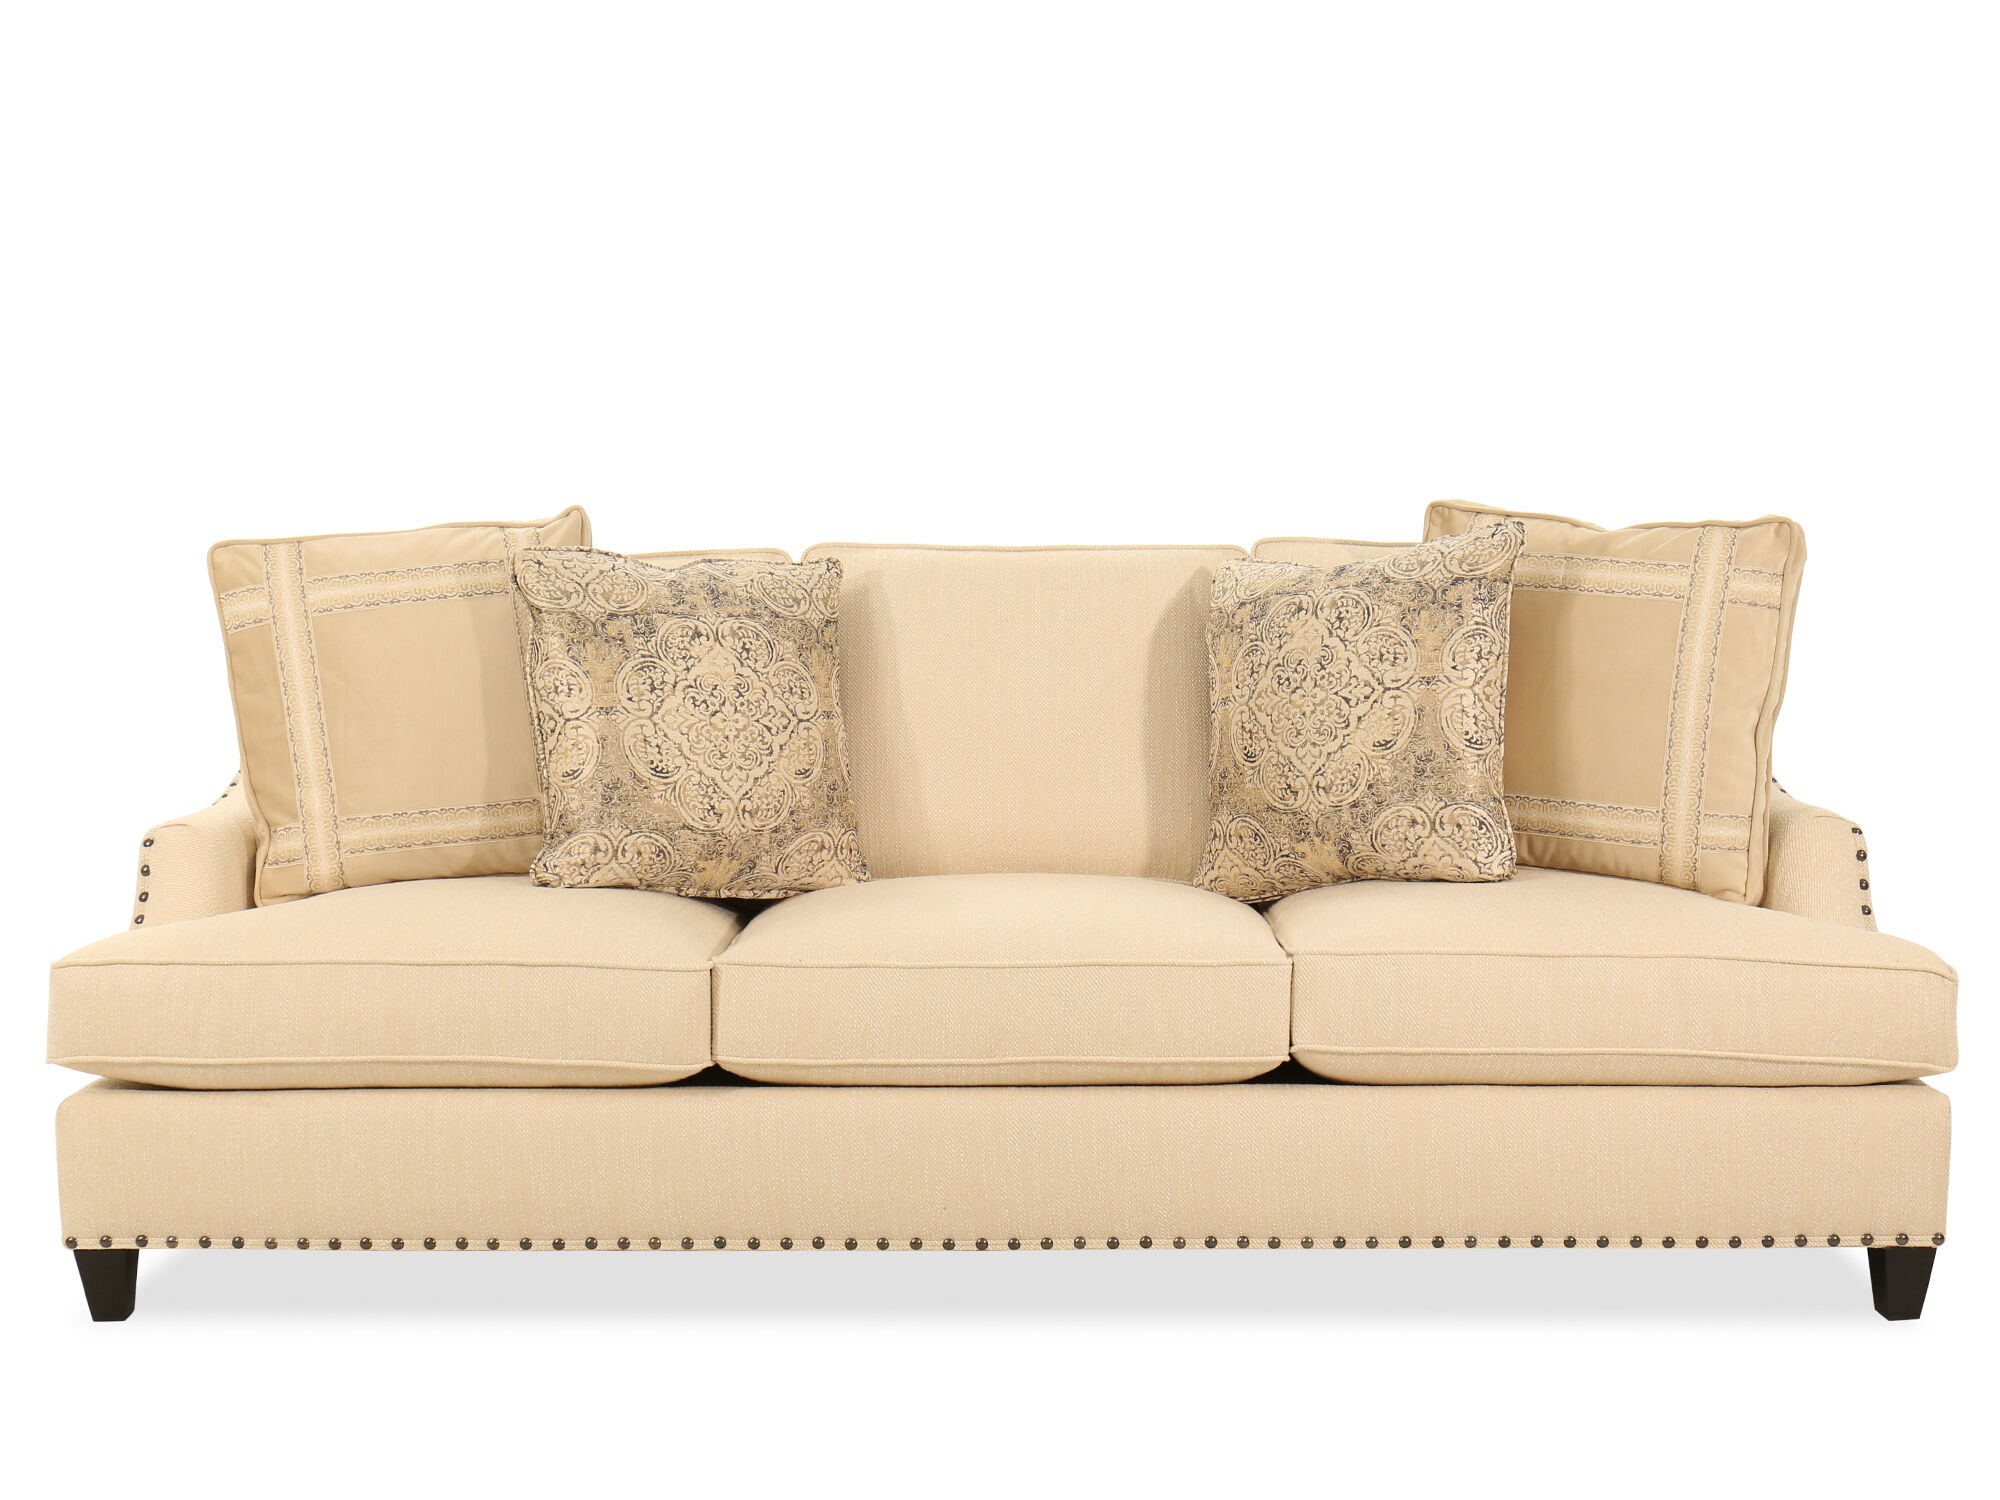 Nailhead-Accented Contemporary Sofa in Beige | Mathis Brothers Furniture